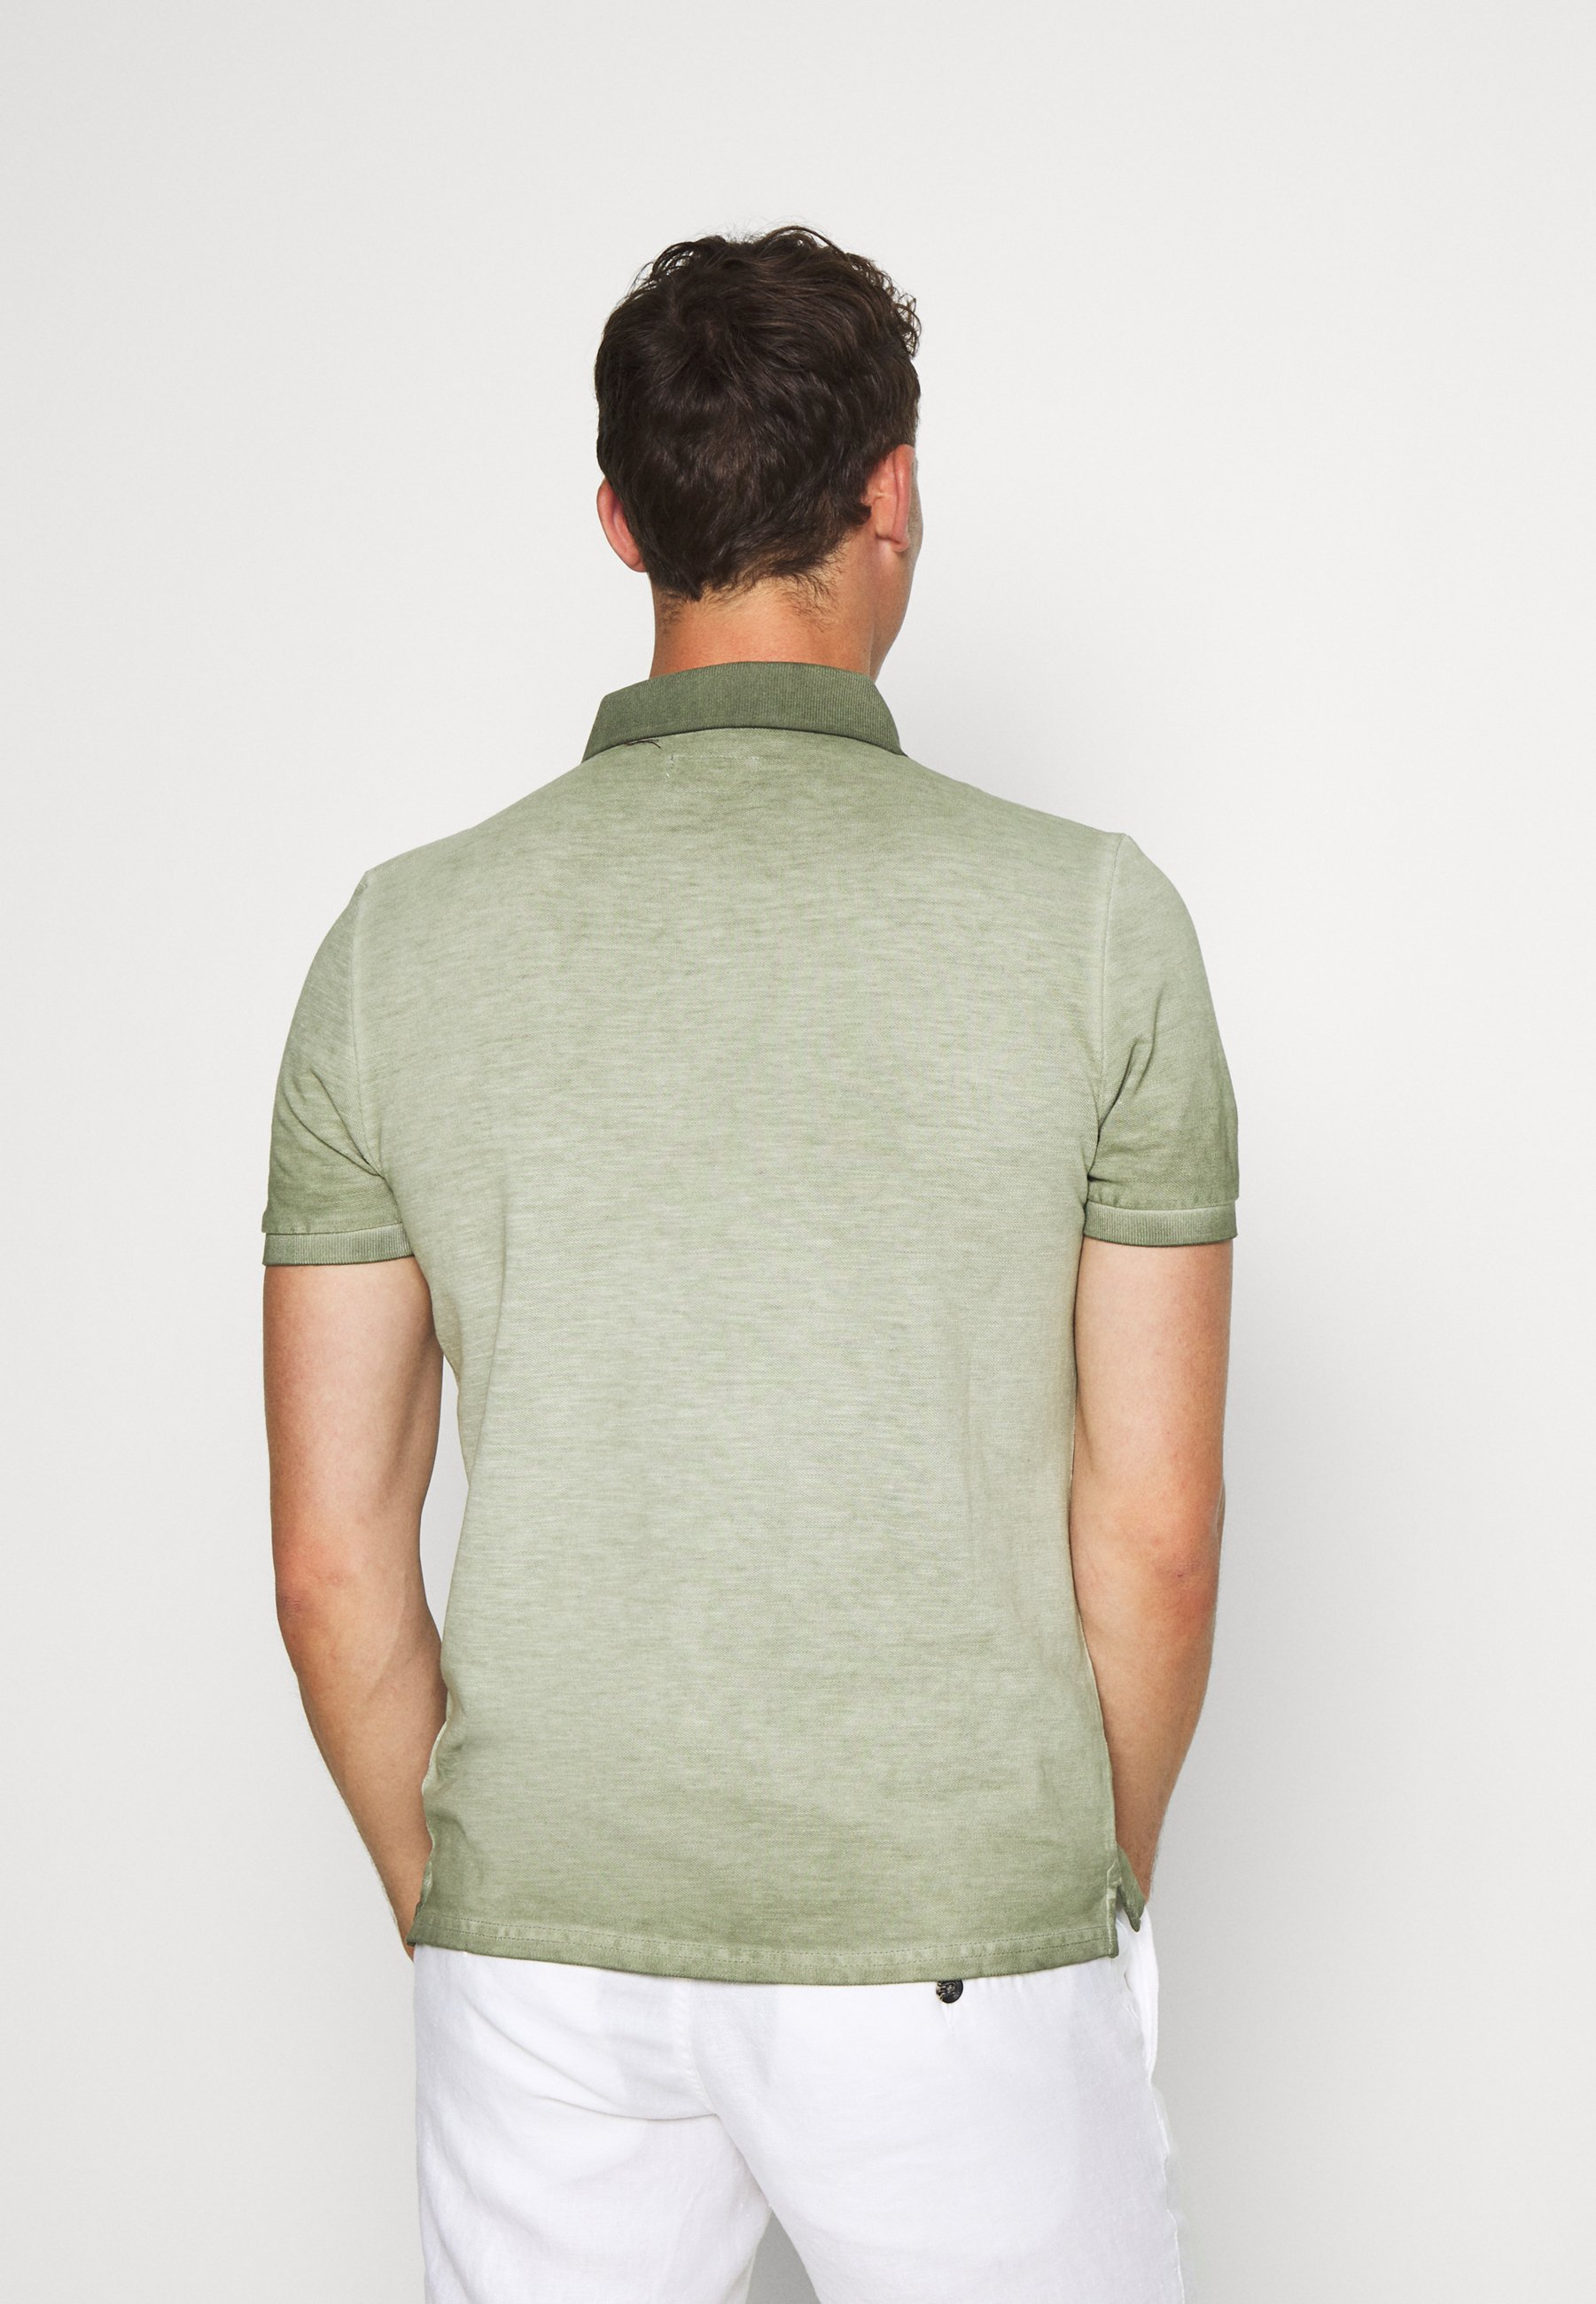 Q/S designed by Polo shirt - seagrass 6sho2